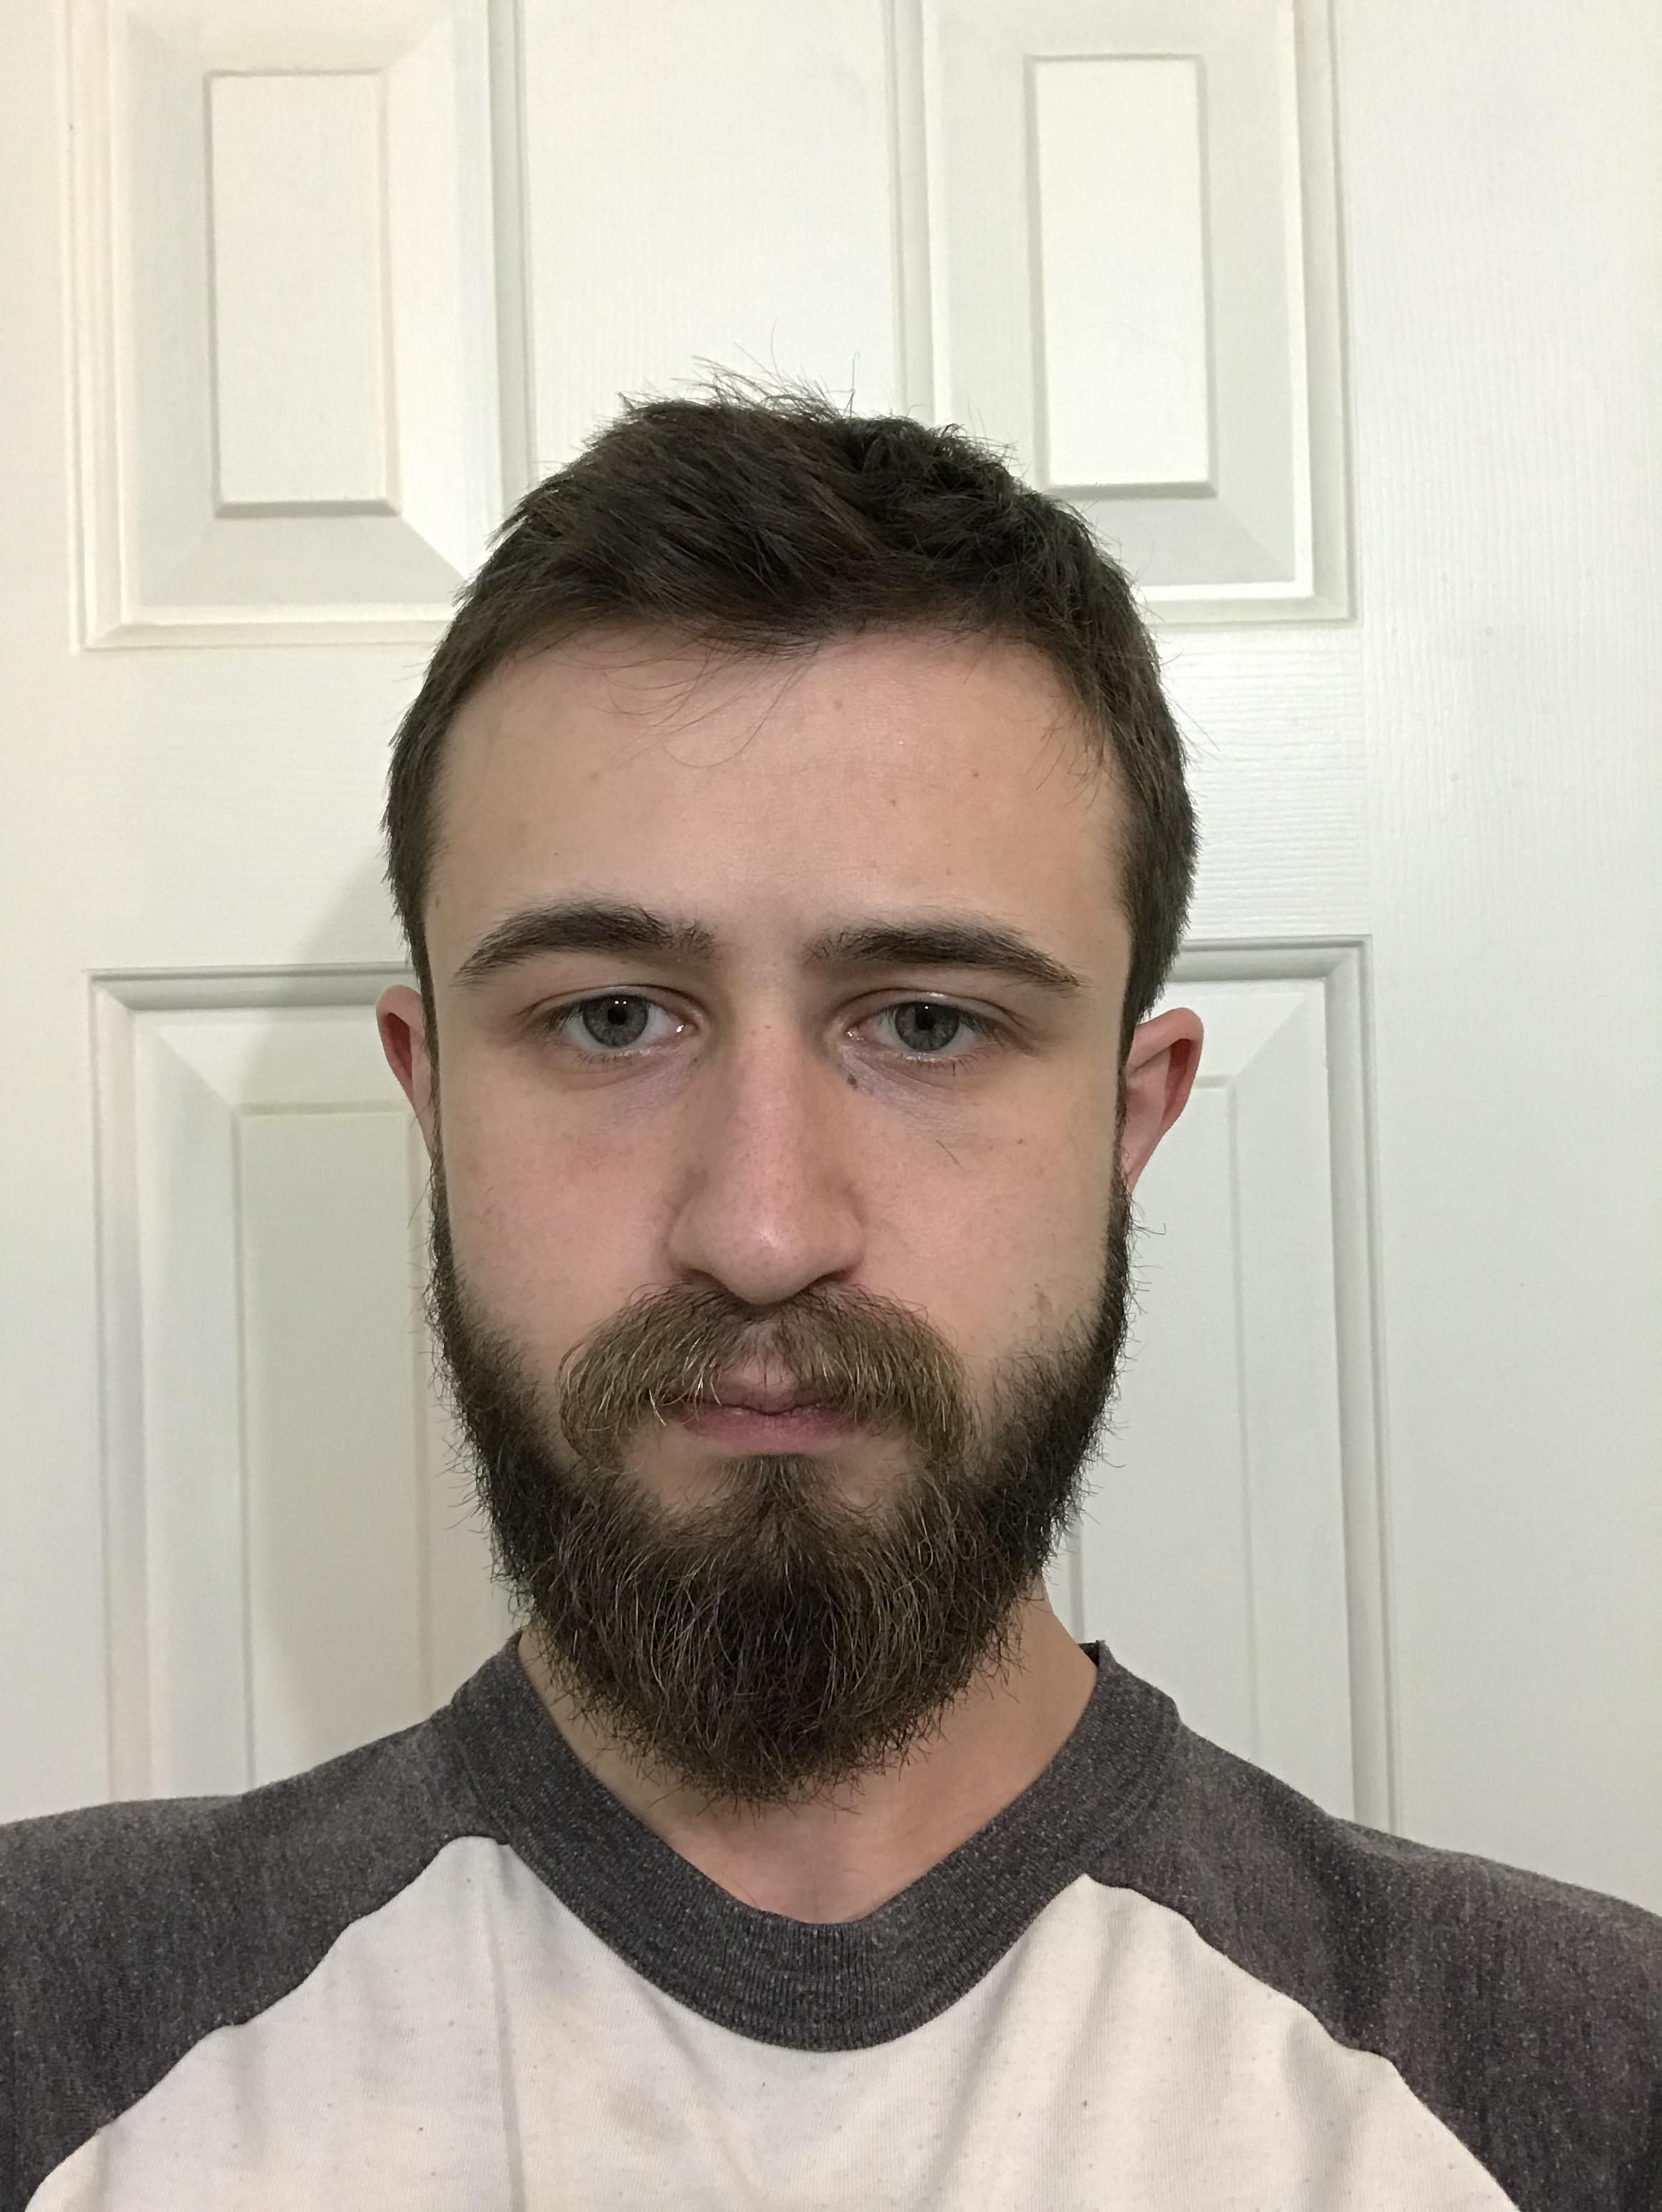 A Few People Yesterday Asked For A Front View Of My Beard I Hope Youre Not Terribly Disappointed Beard People Yesterday